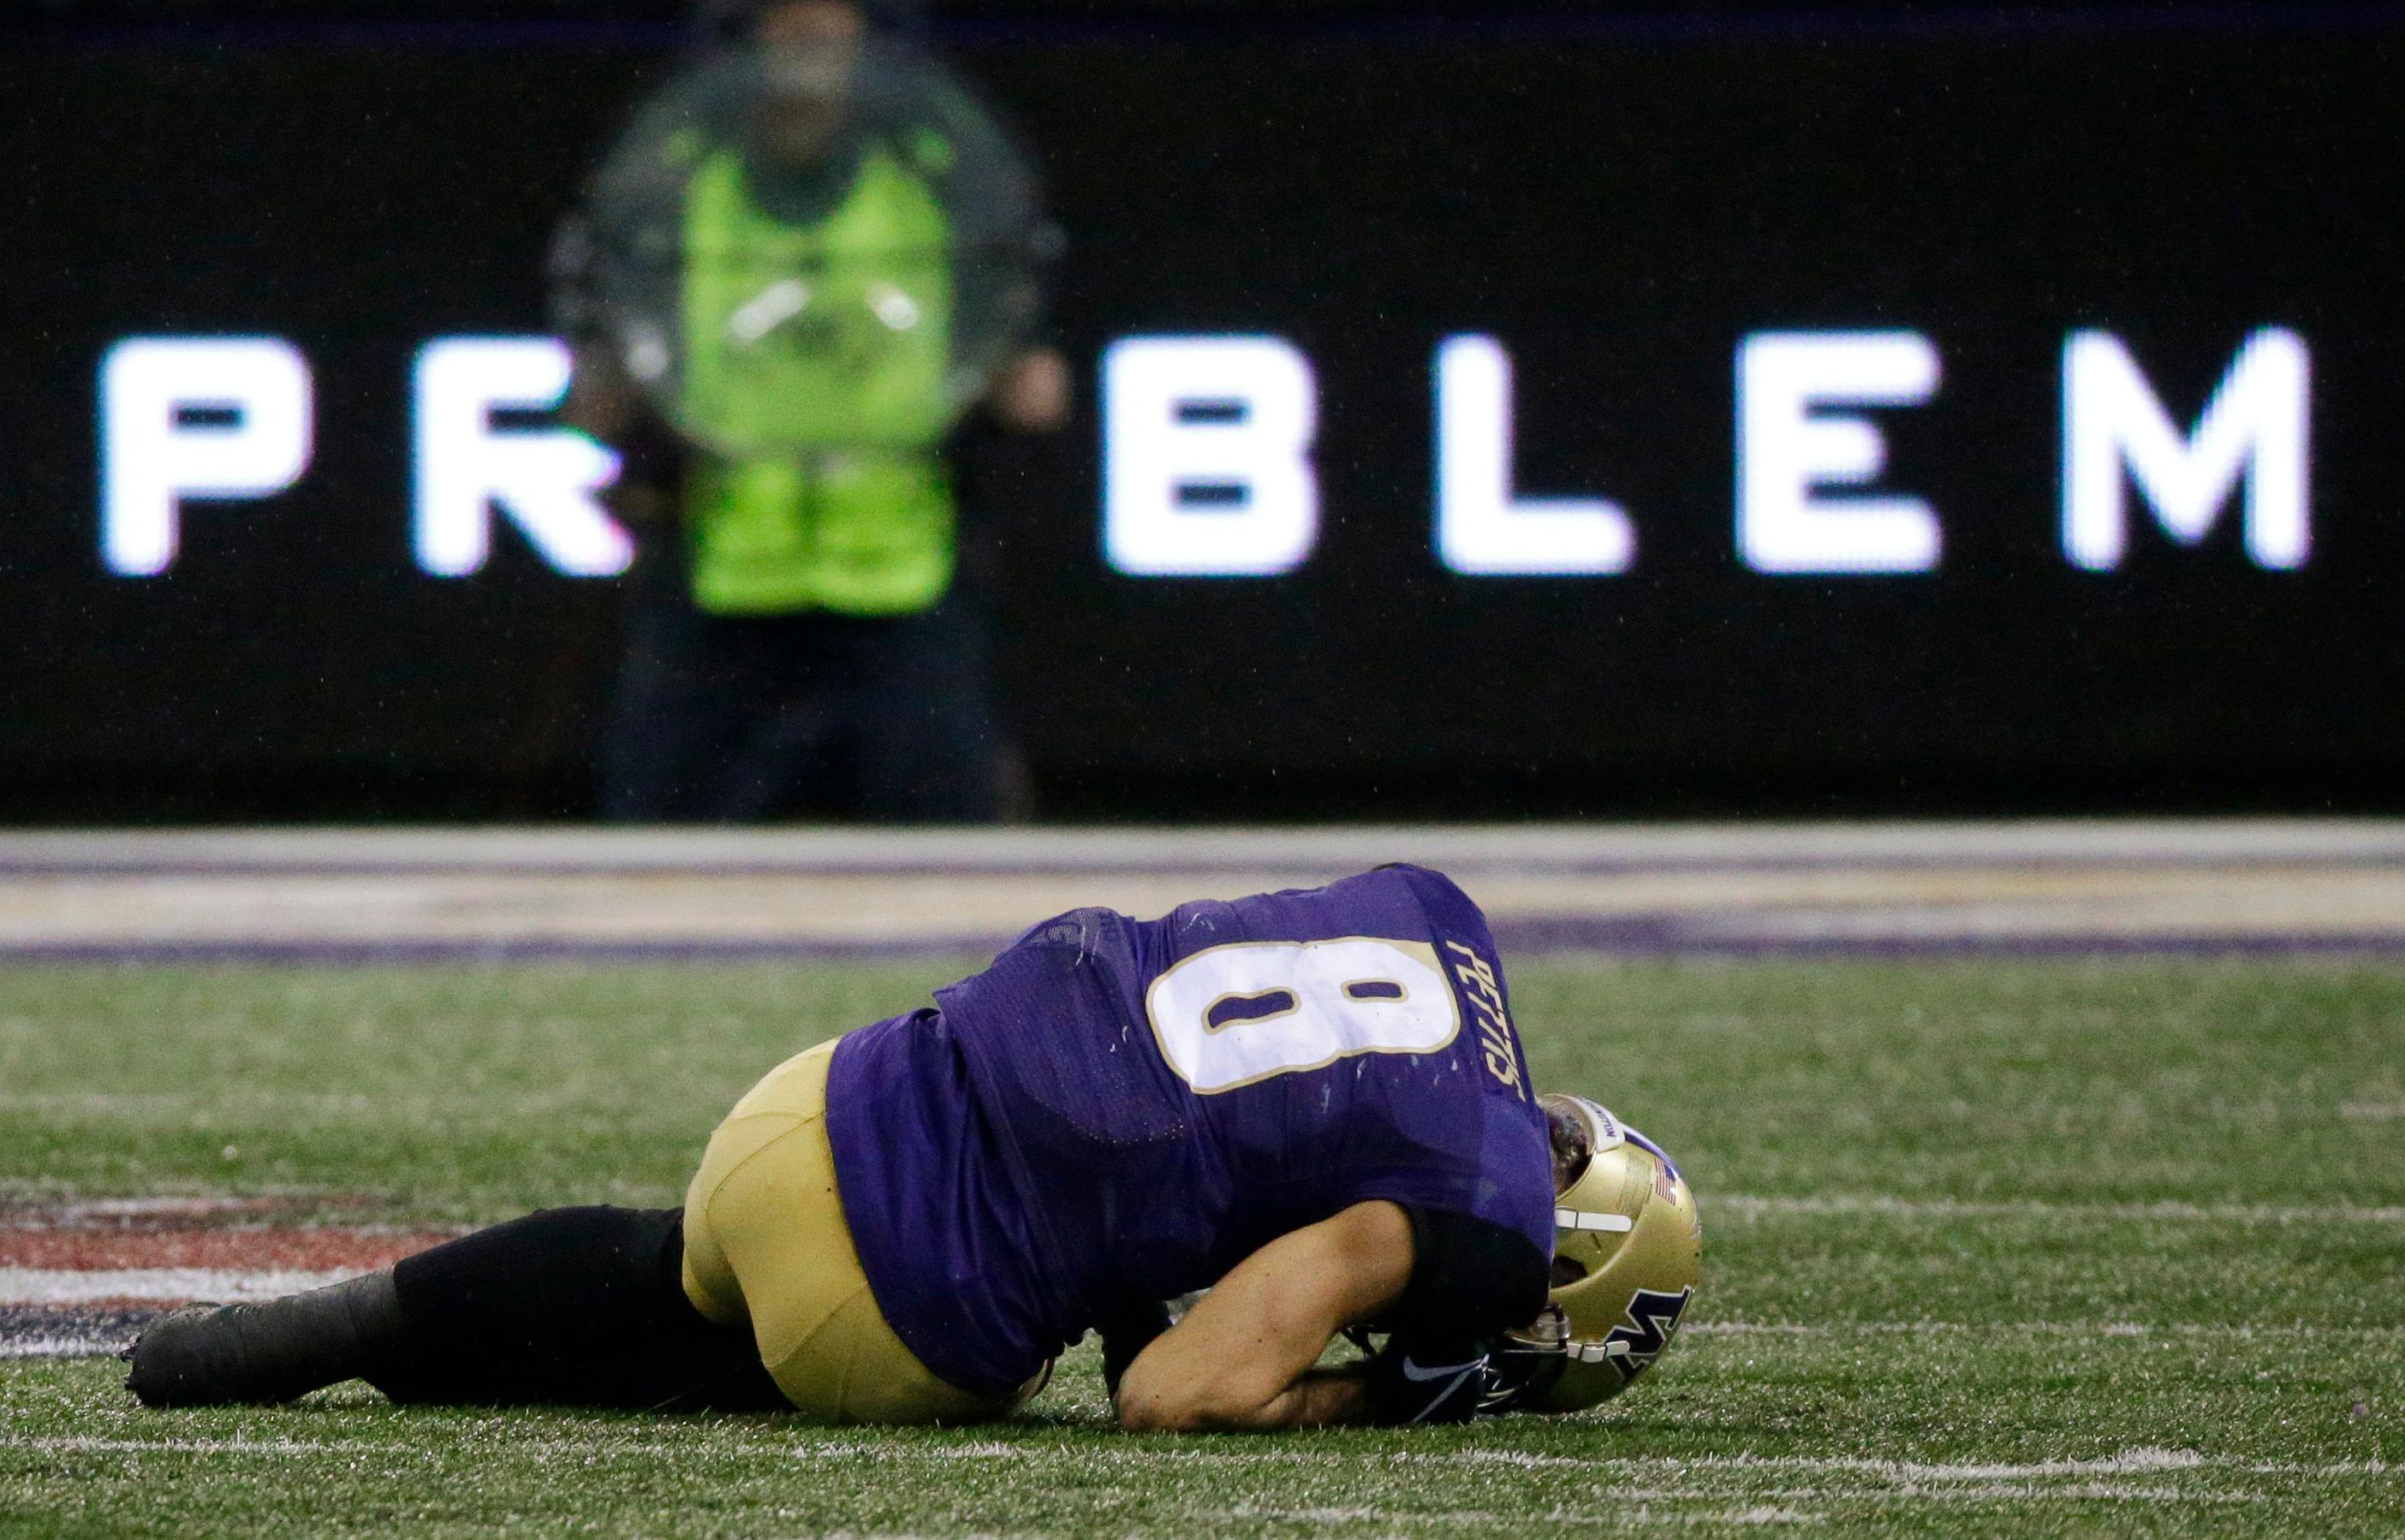 Washington wide receiver Dante Pettis curls up on the turf after an injury during the first half of an NCAA college football game against Washington State, Saturday, Nov. 25, 2017, in Seattle. Pettis left the field after the play. (AP Photo/Ted S. Warren)